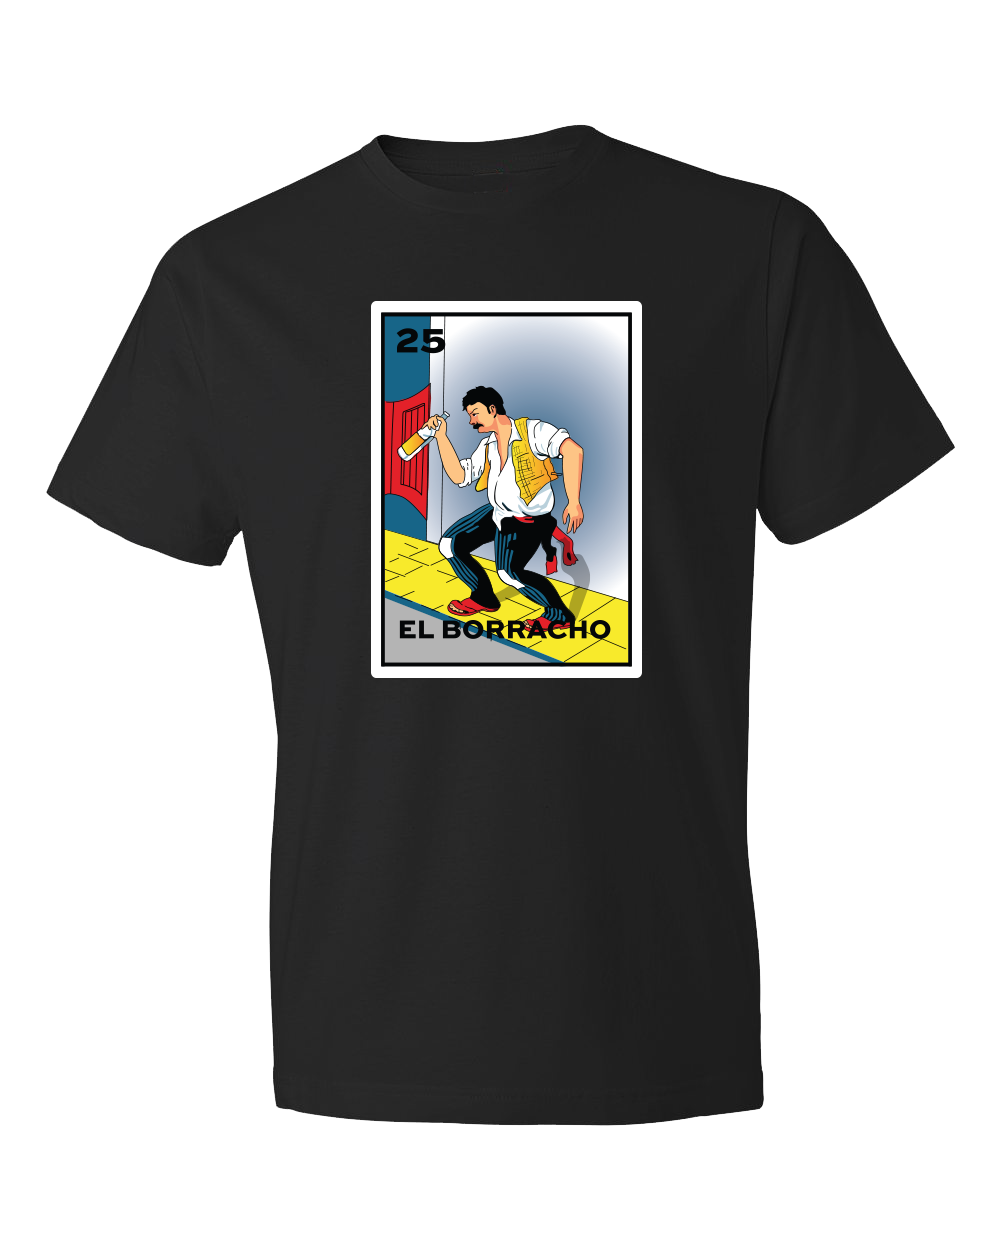 Black solid t shirt with El Borracho and a drunk man in a bar setting printed on a rectangle from the classic Loteria game